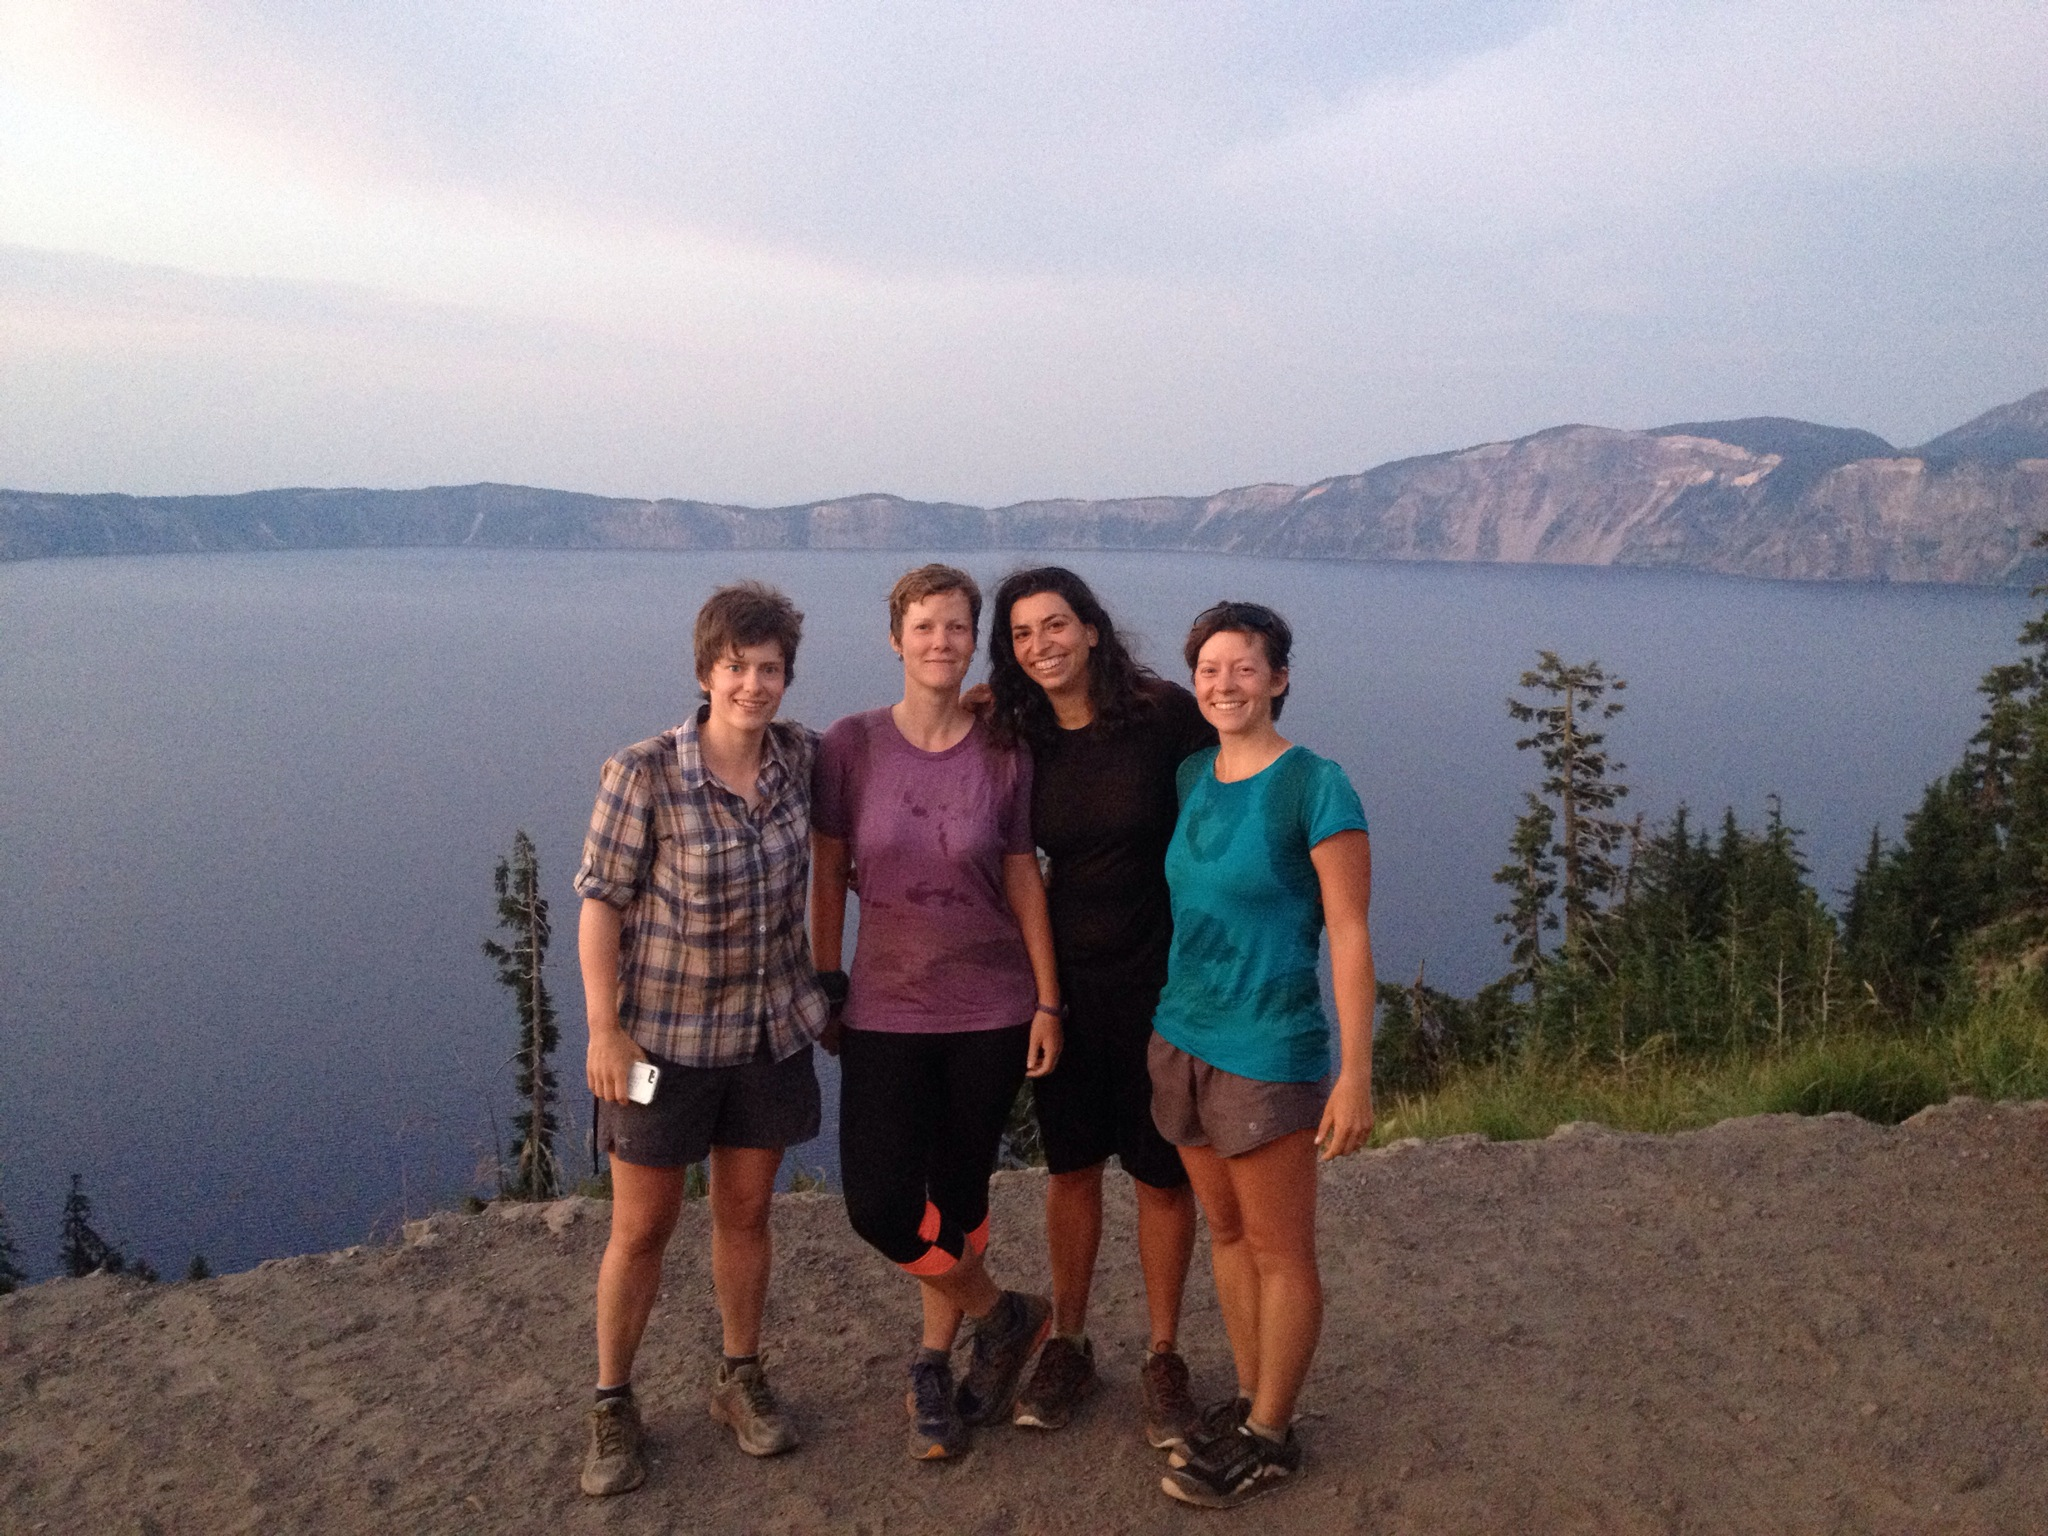 The sunset hikers at Crater Lake: Hot Tang, Mozzie, Emu, and Penguin.